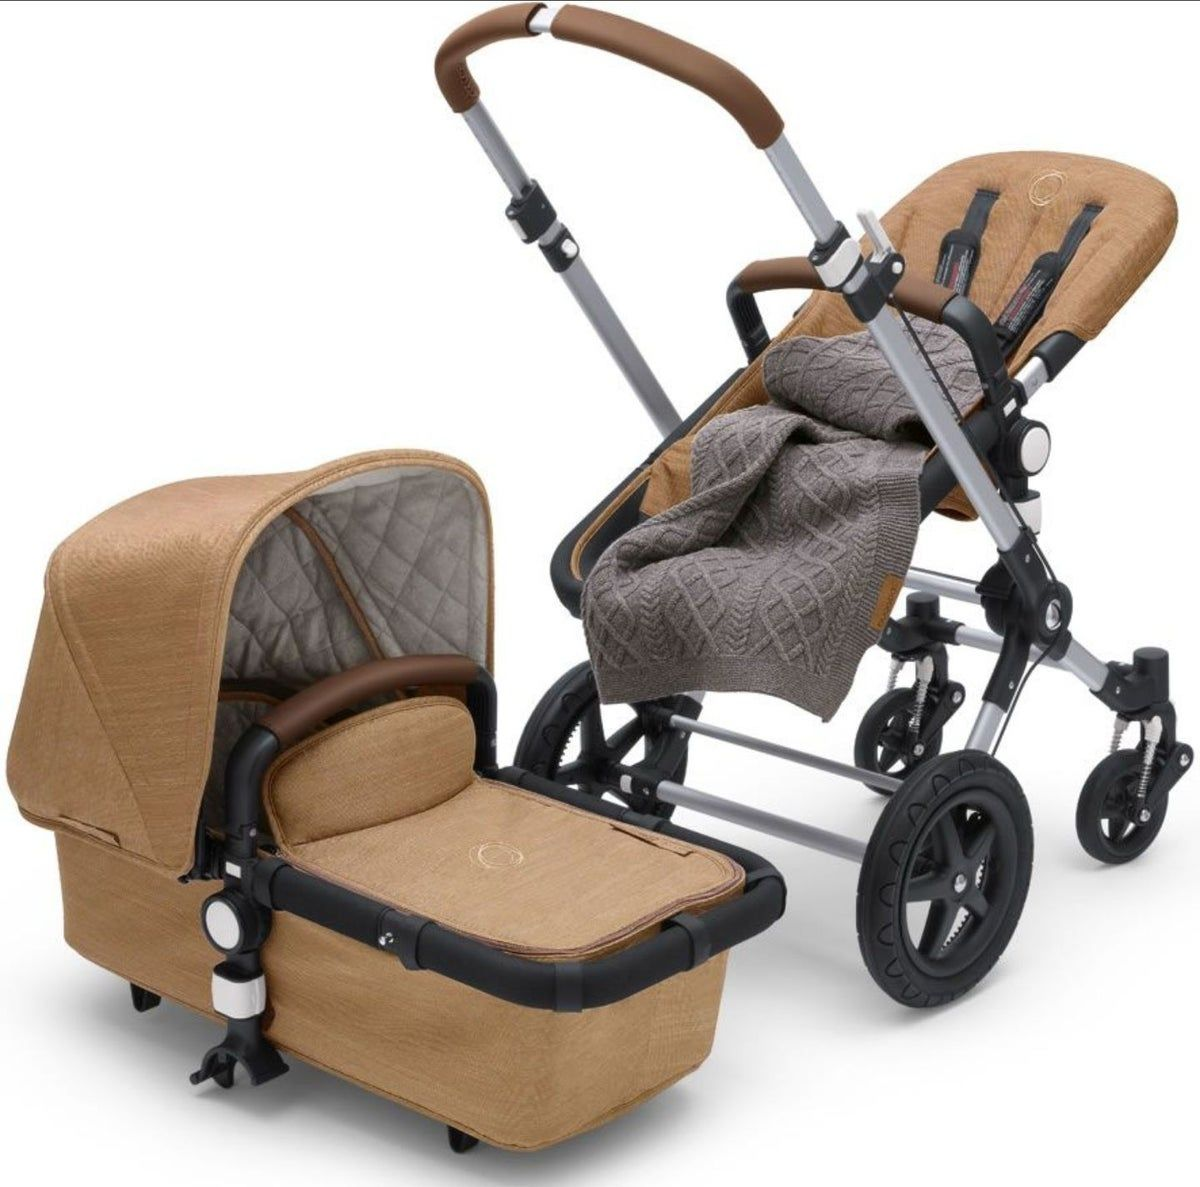 Pin by Harajuku Cindy on Baby in 2020 Bugaboo stroller